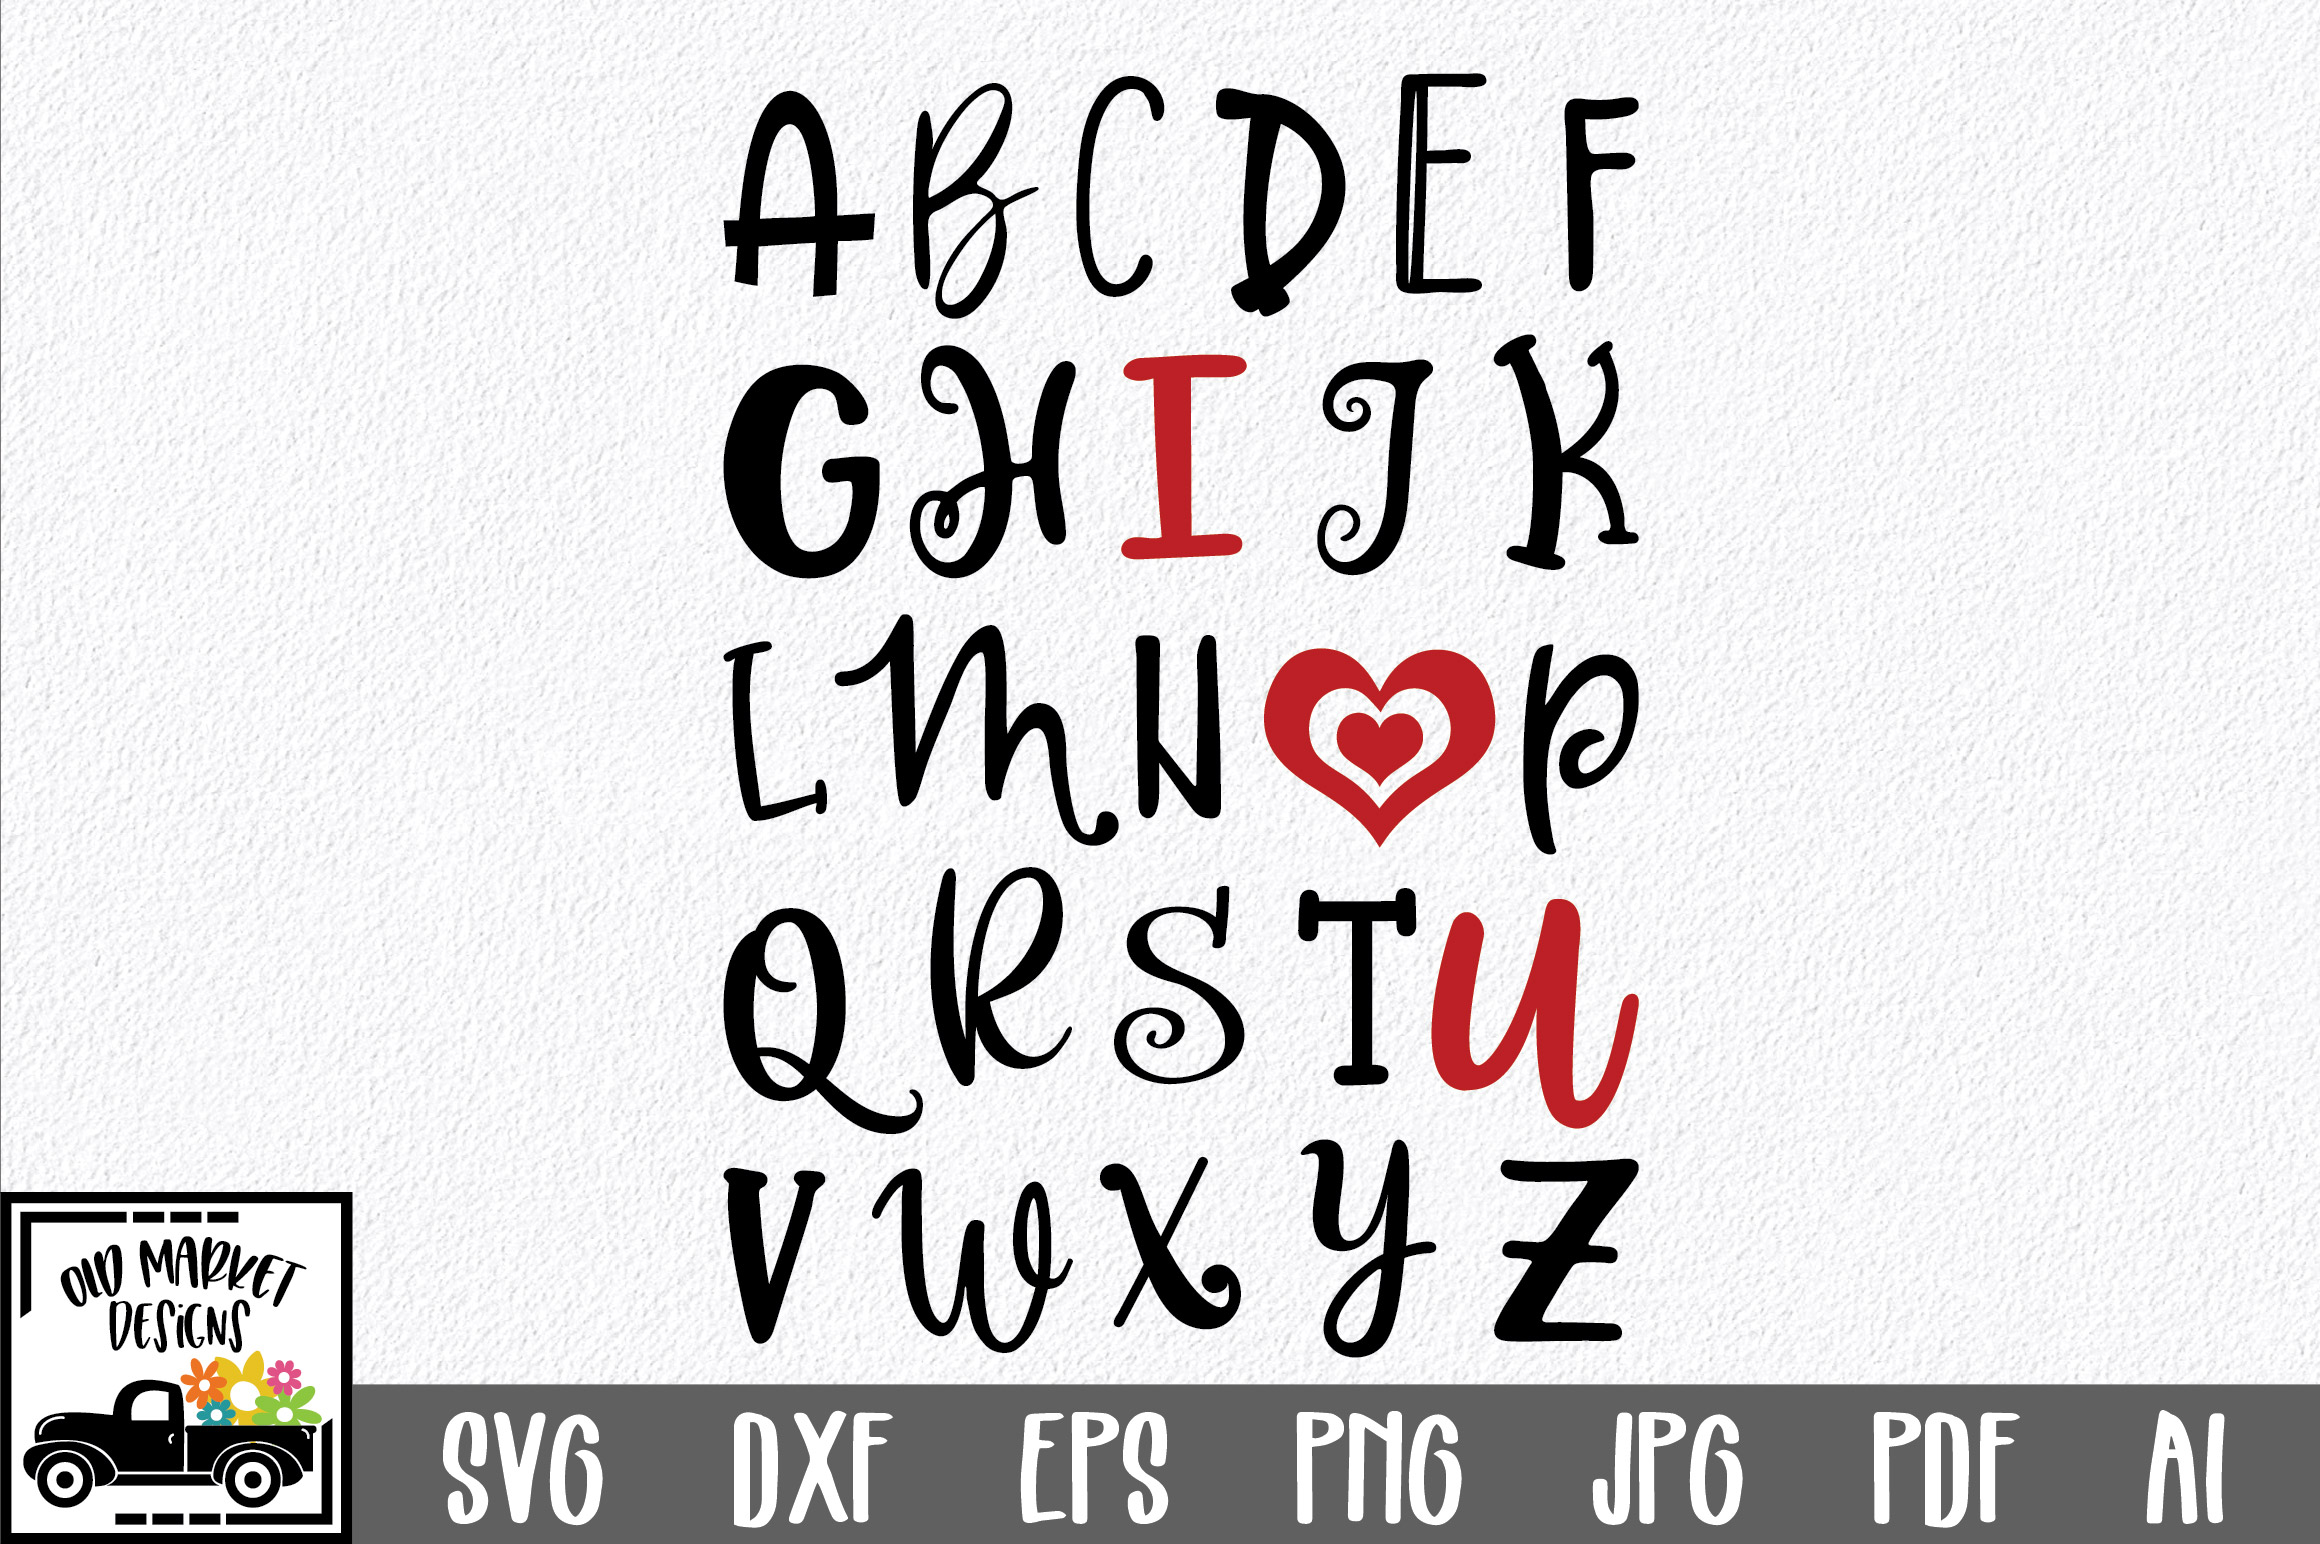 Download Free Abc I Love You Svg Cut File Graphic By Oldmarketdesigns for Cricut Explore, Silhouette and other cutting machines.